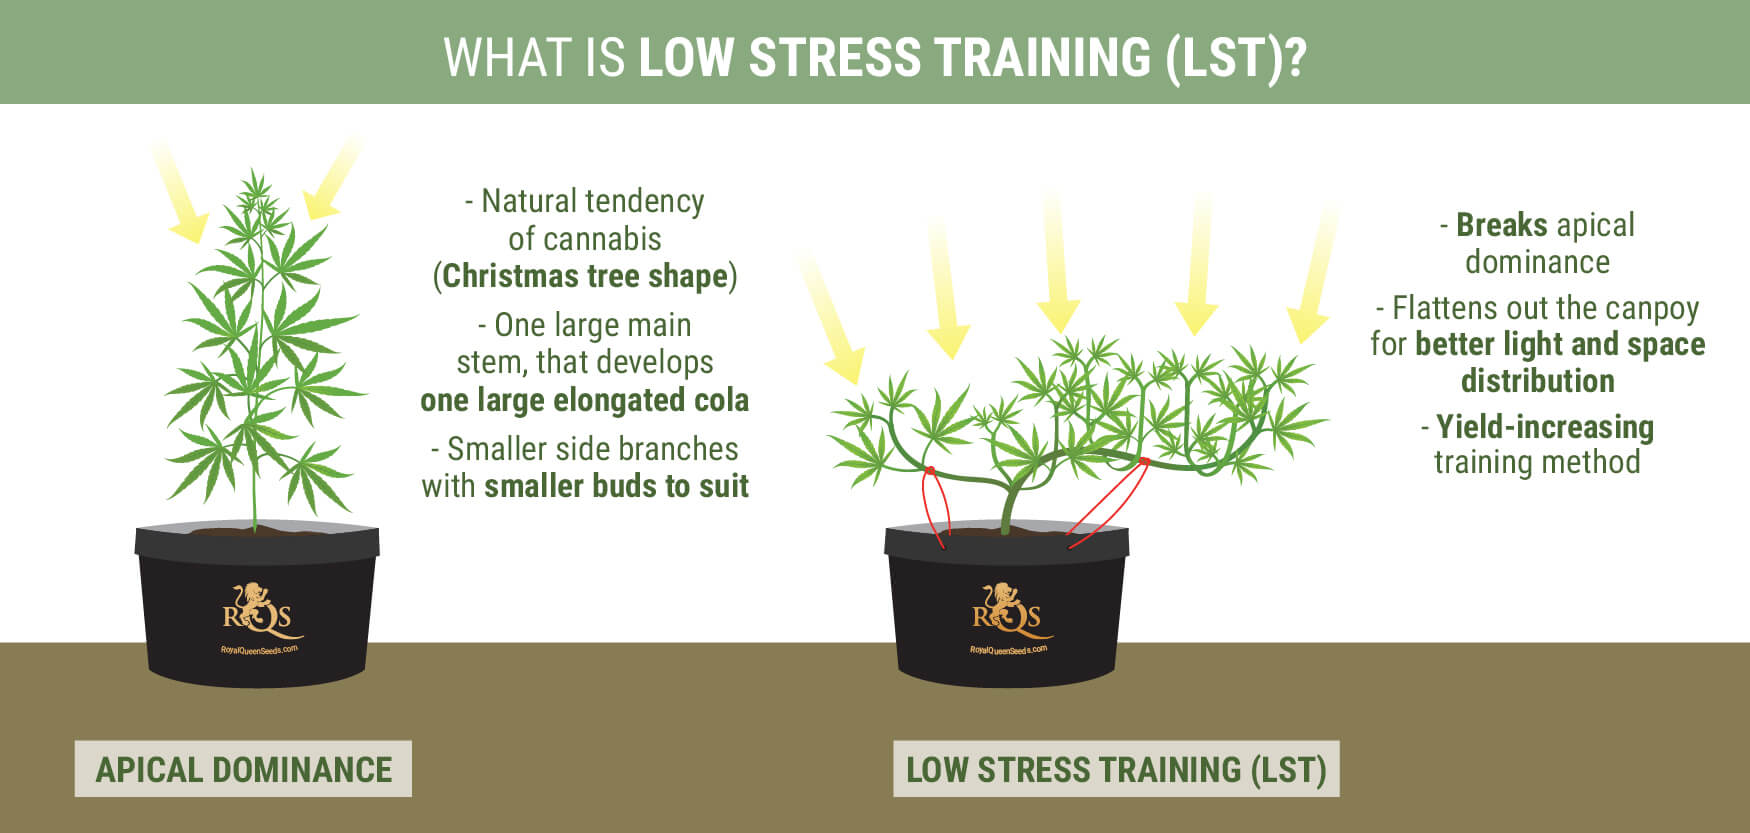 What is Low Stress Training?